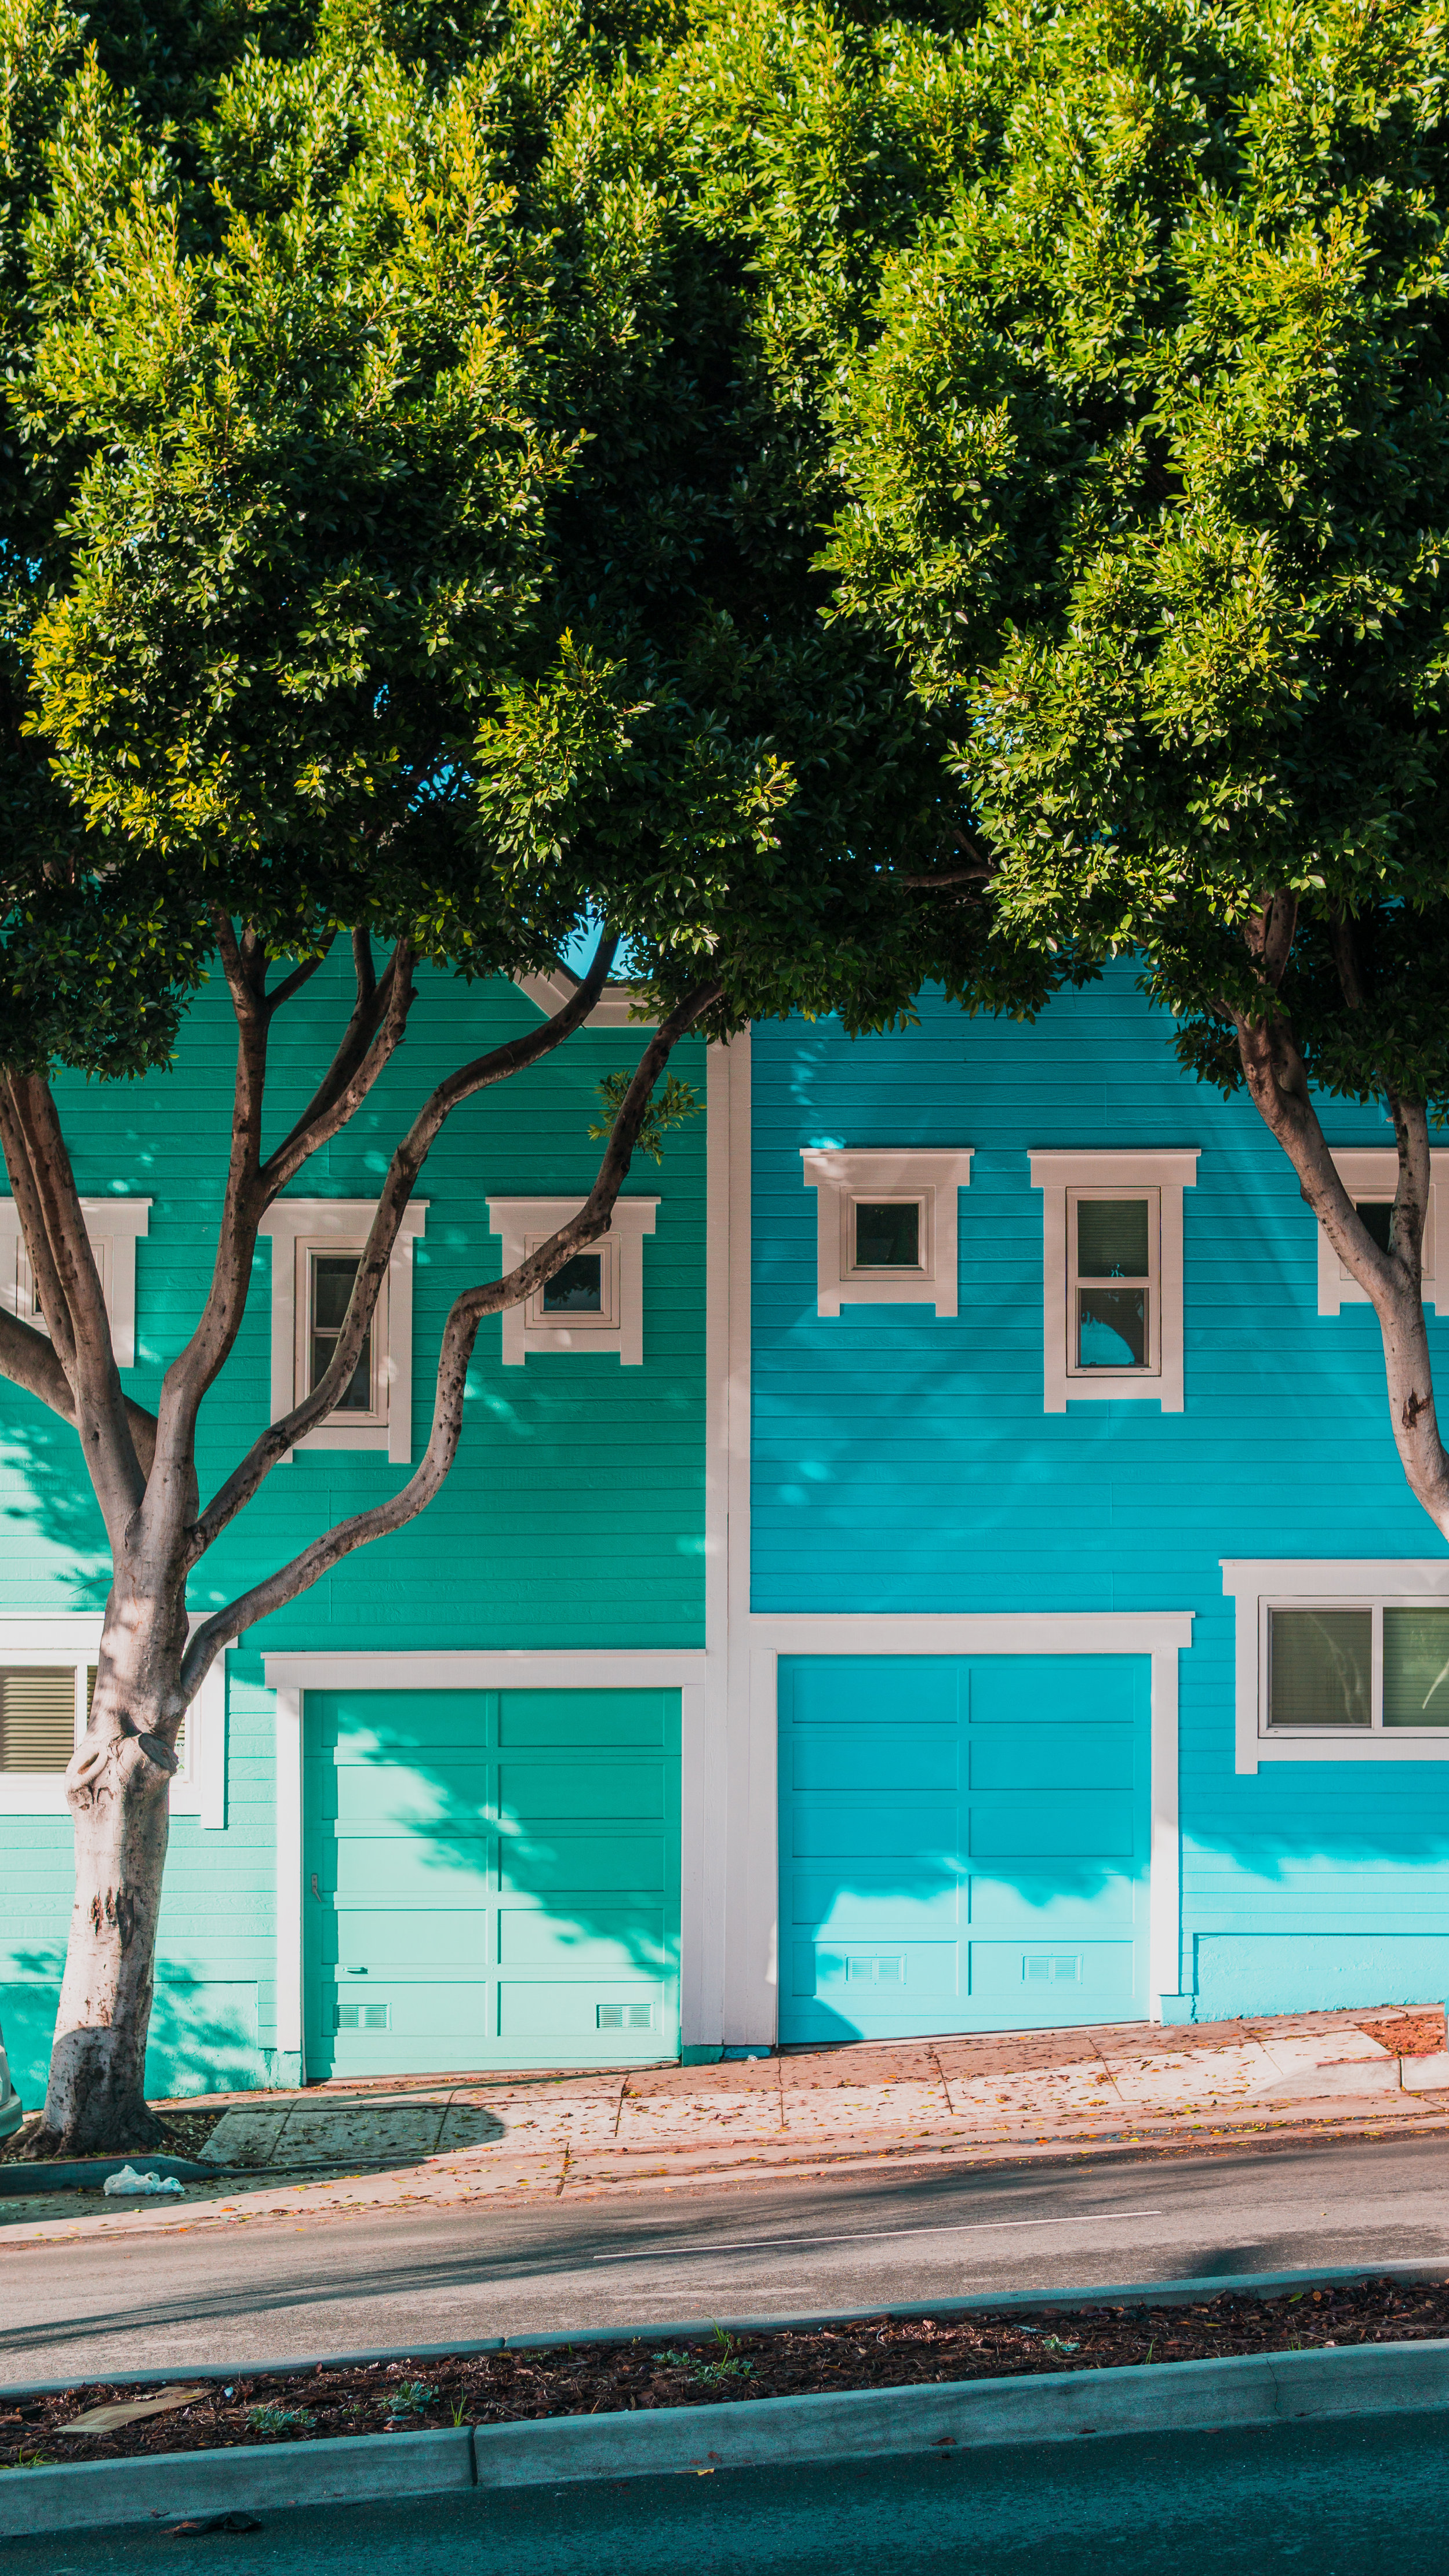 Cute attached houses that are bright colors.